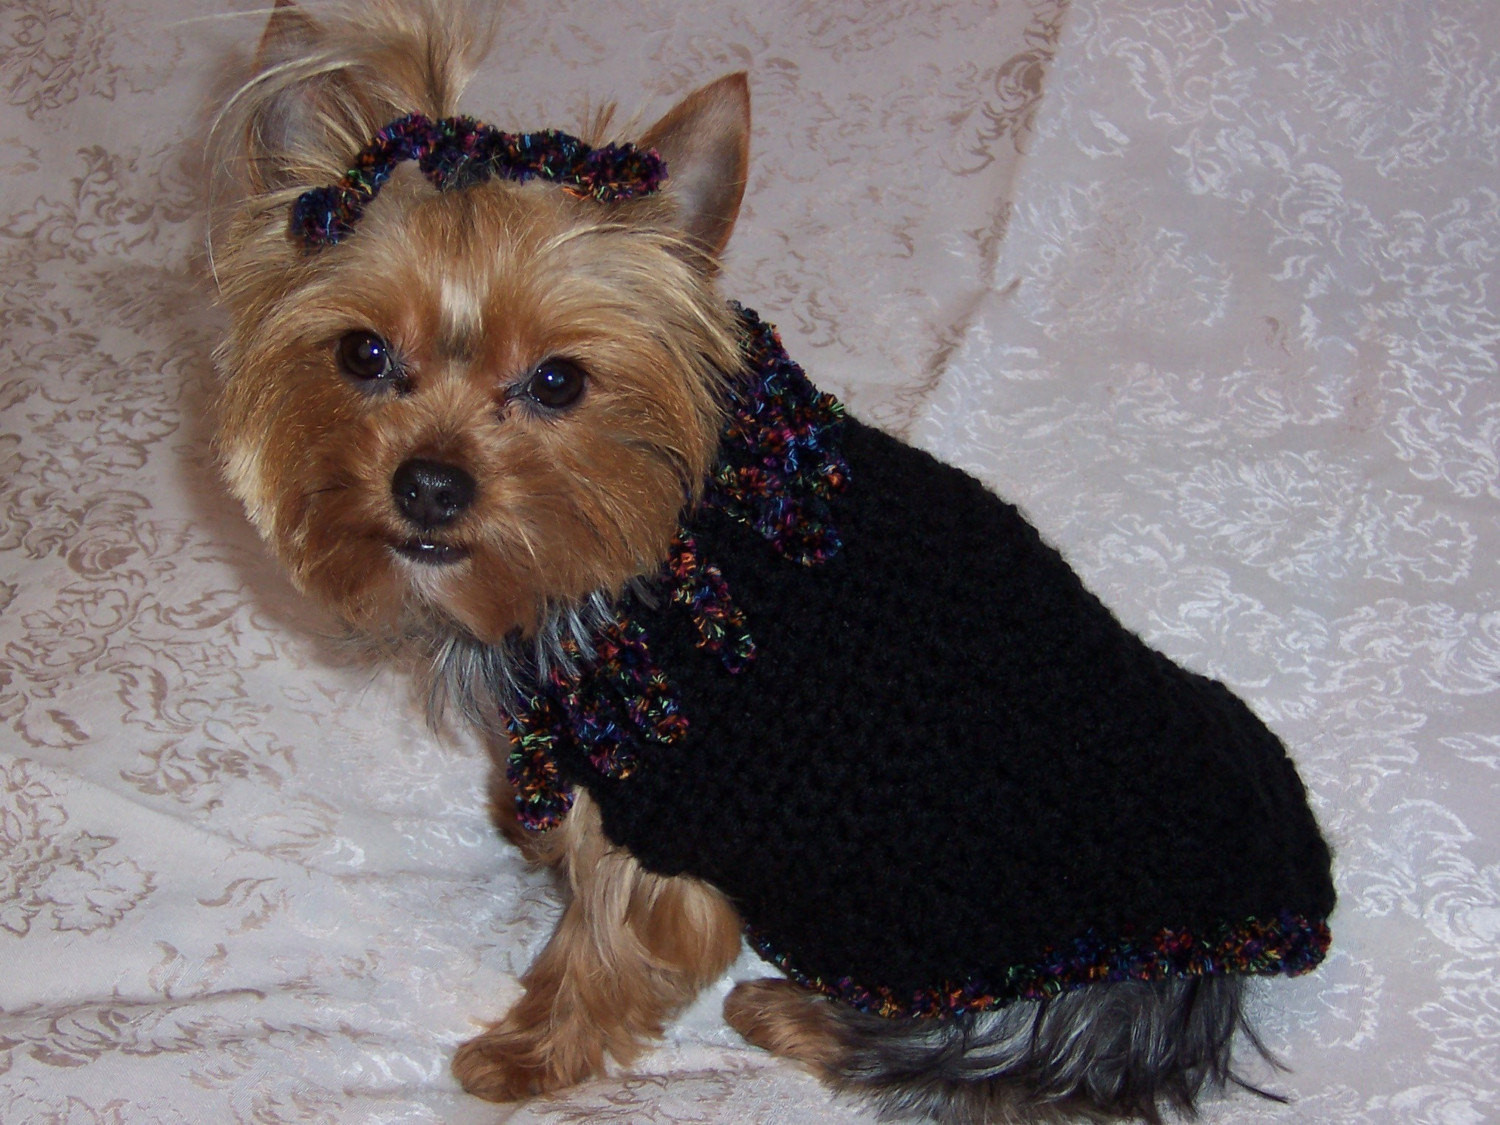 Dog Sweater Patterns Beautiful Curly Q Dog Sweater Crochet Pattern Of Unique 41 Photos Dog Sweater Patterns